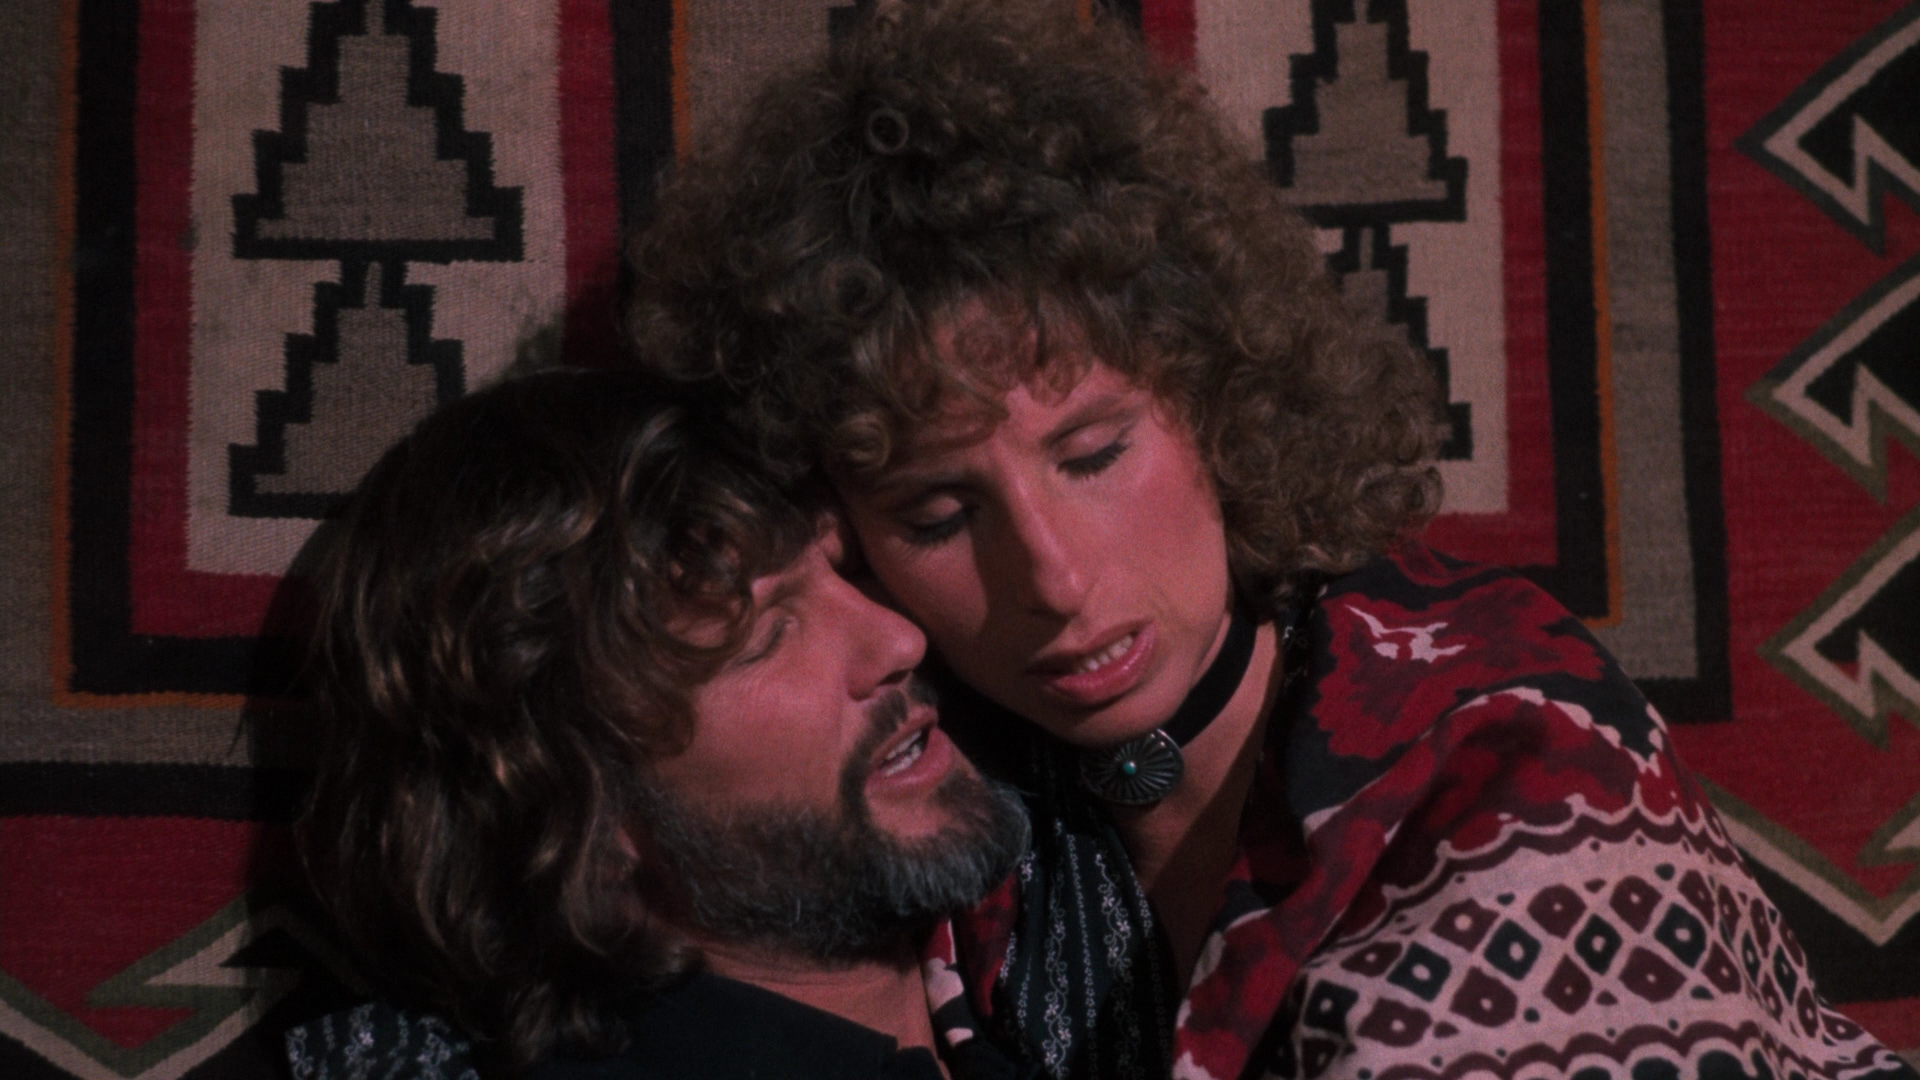 Kris kristofferson movie sex scene